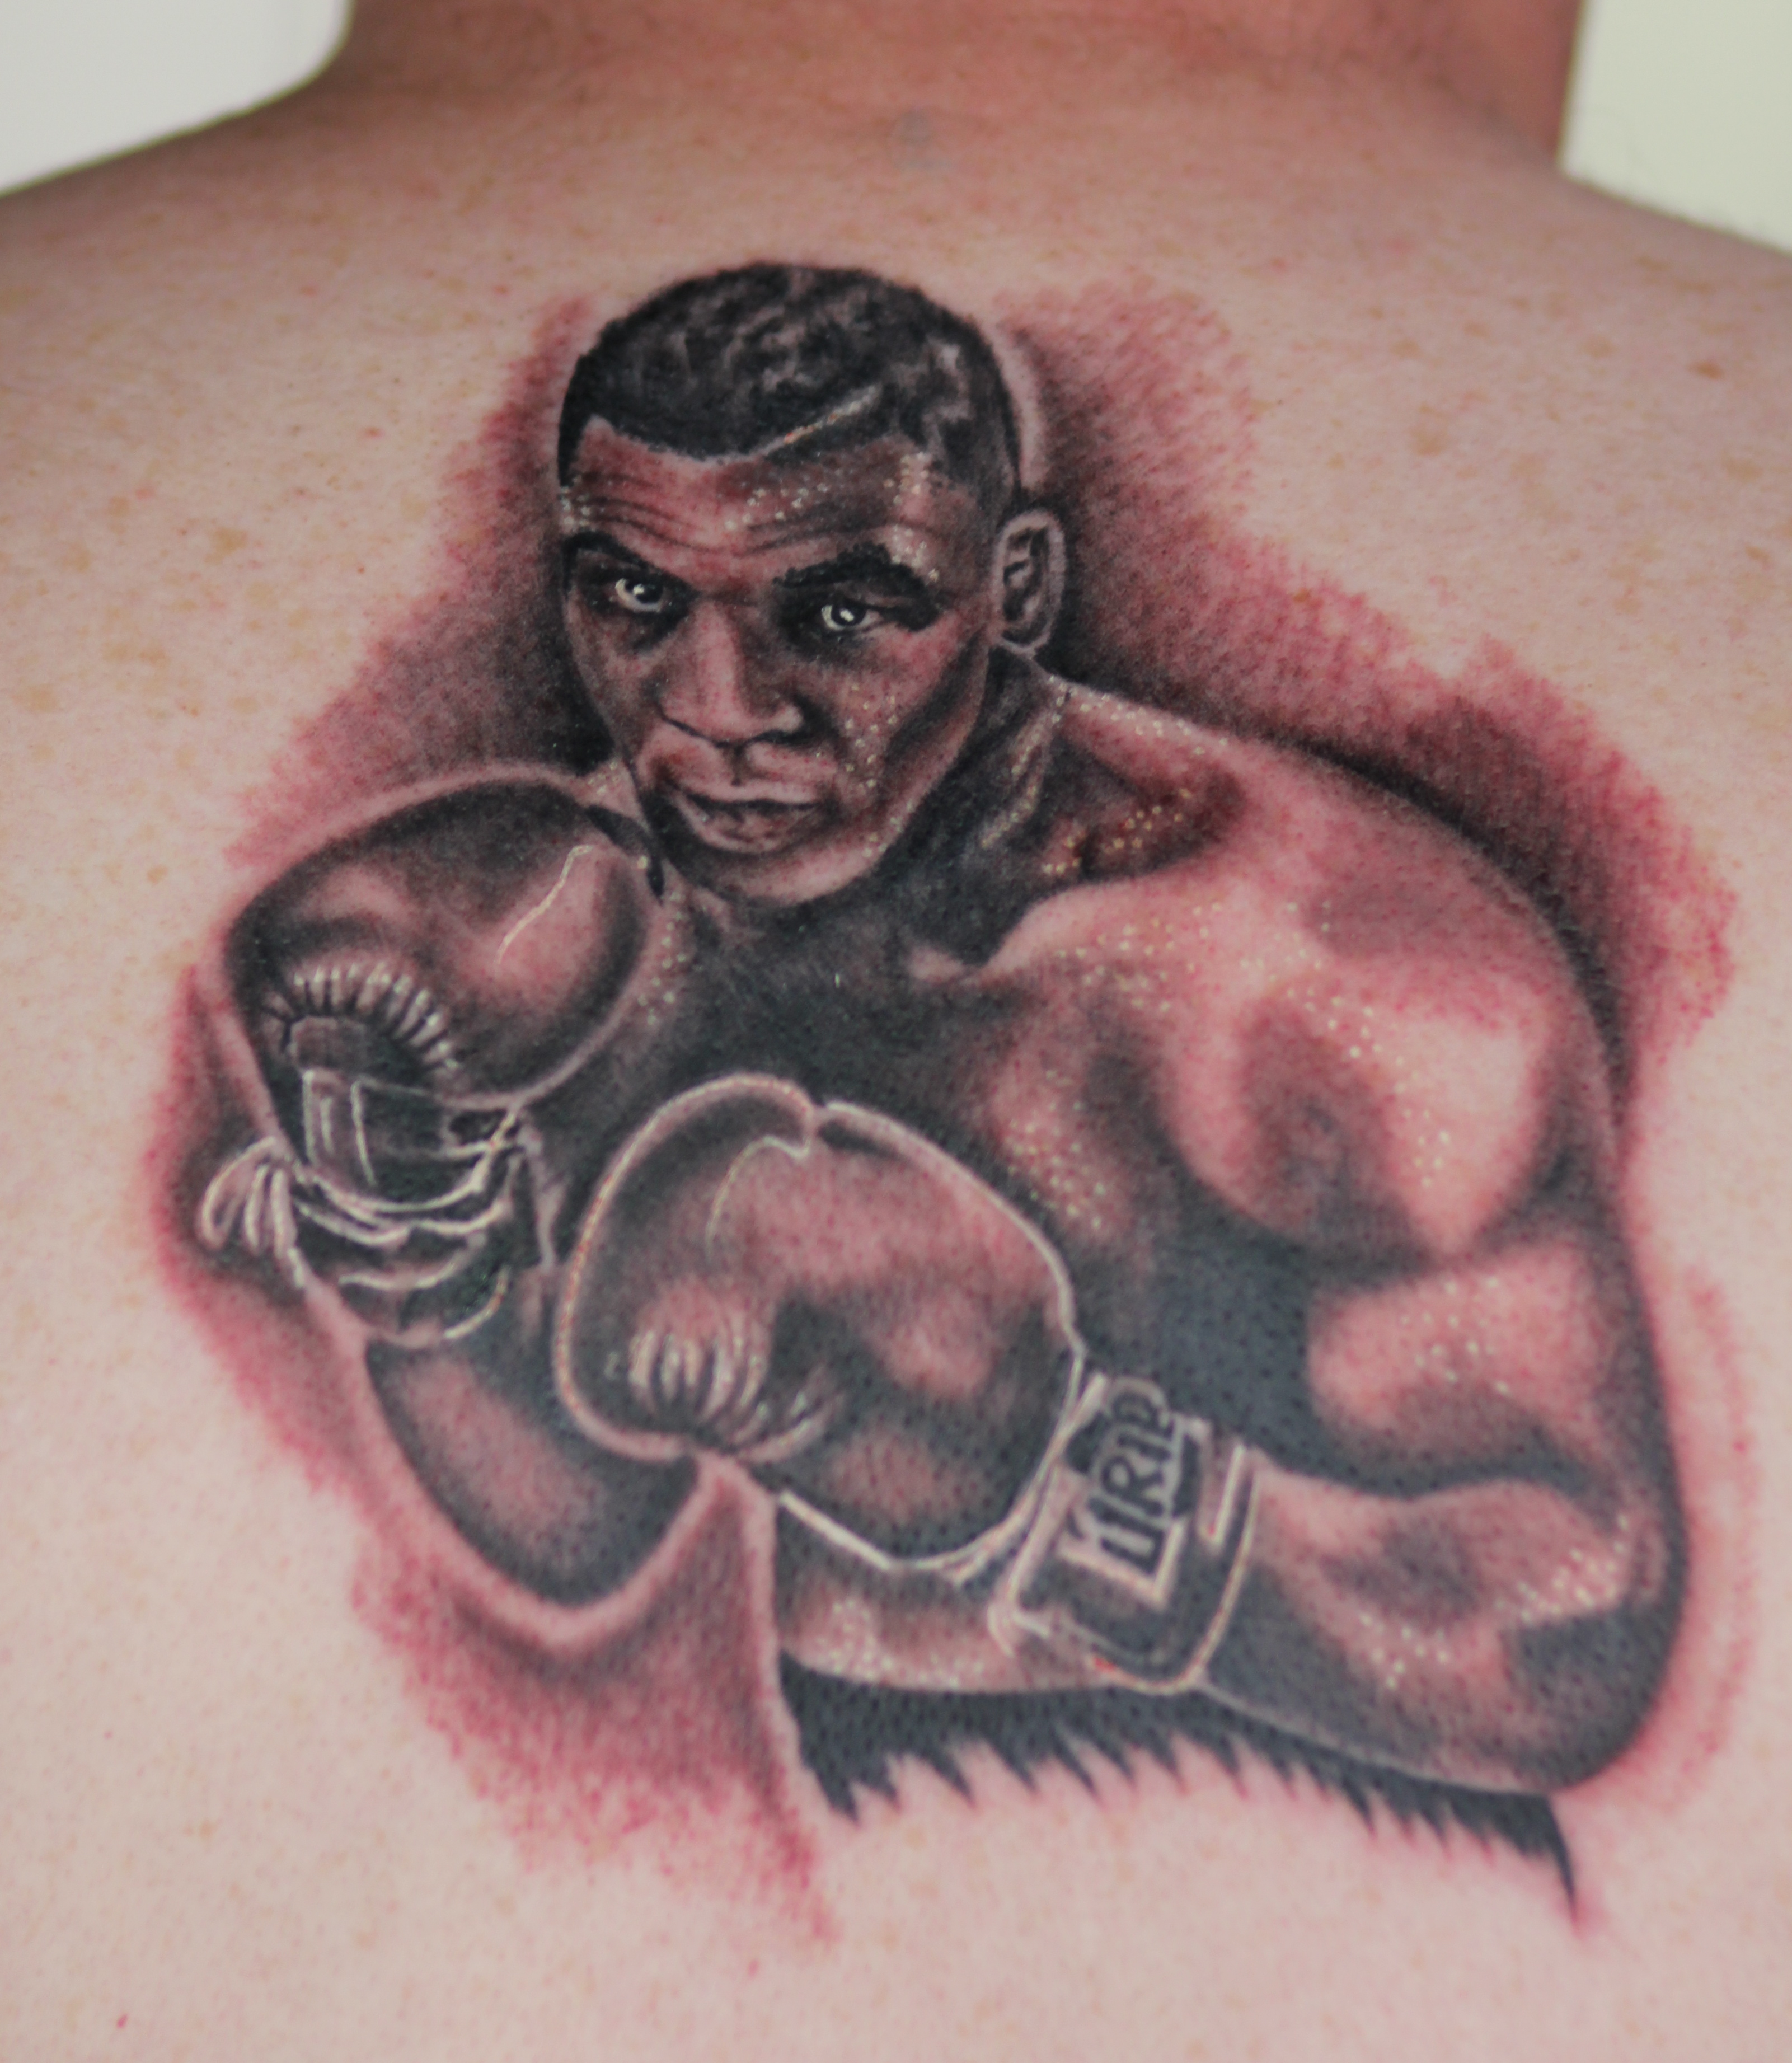 2b875c5049c2e Irish Street Tattoo Iron Mike Tyson. | IRISH ST TATTOO